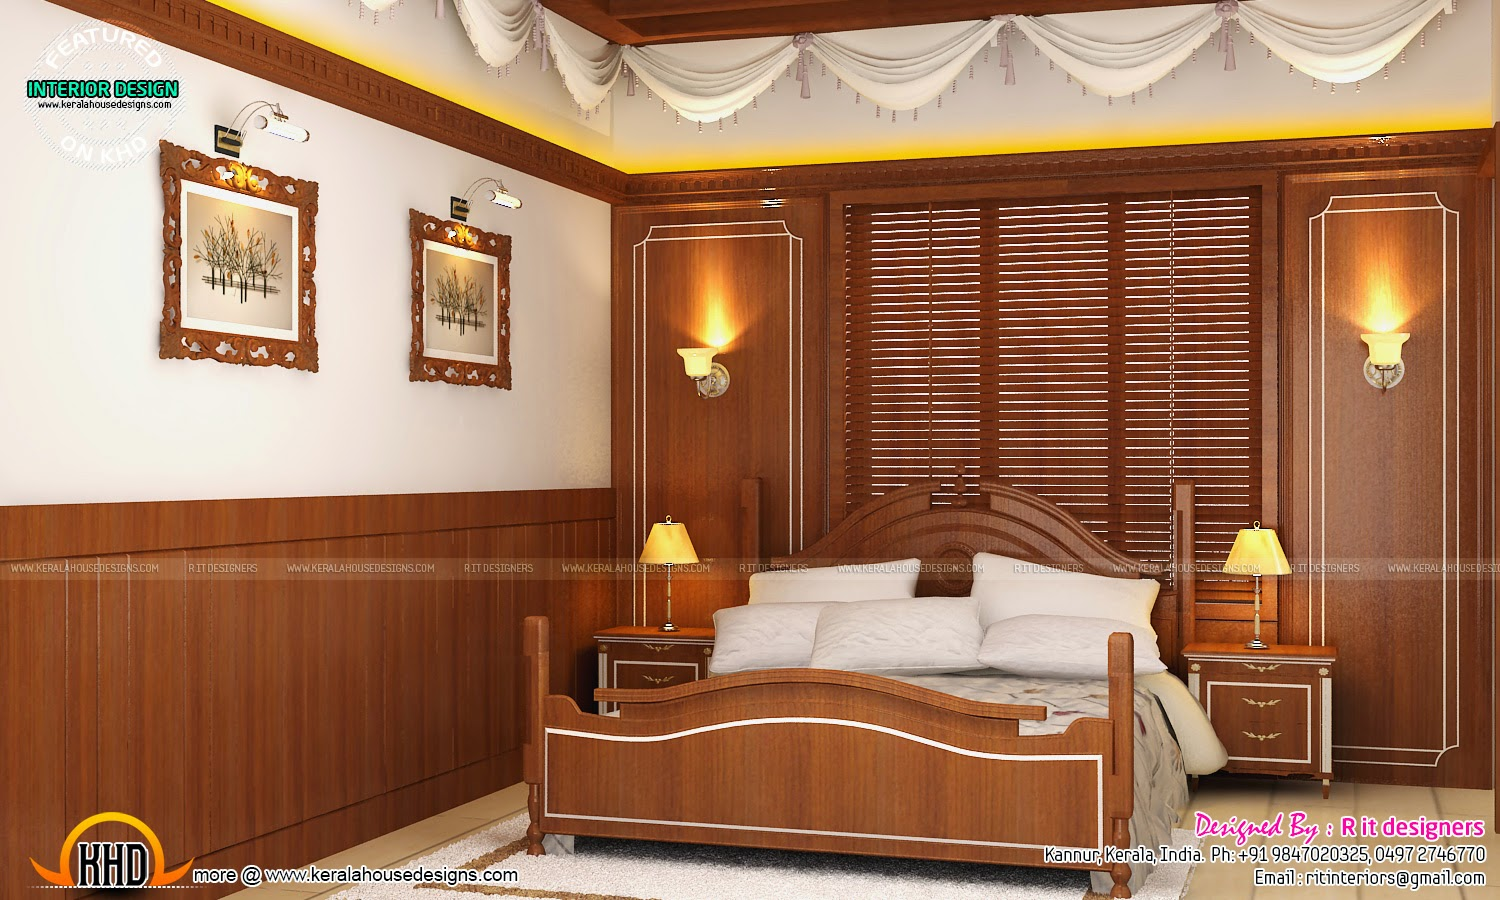 Flat roof house tamilnadu keralahousedesigns for Style of bedroom designs